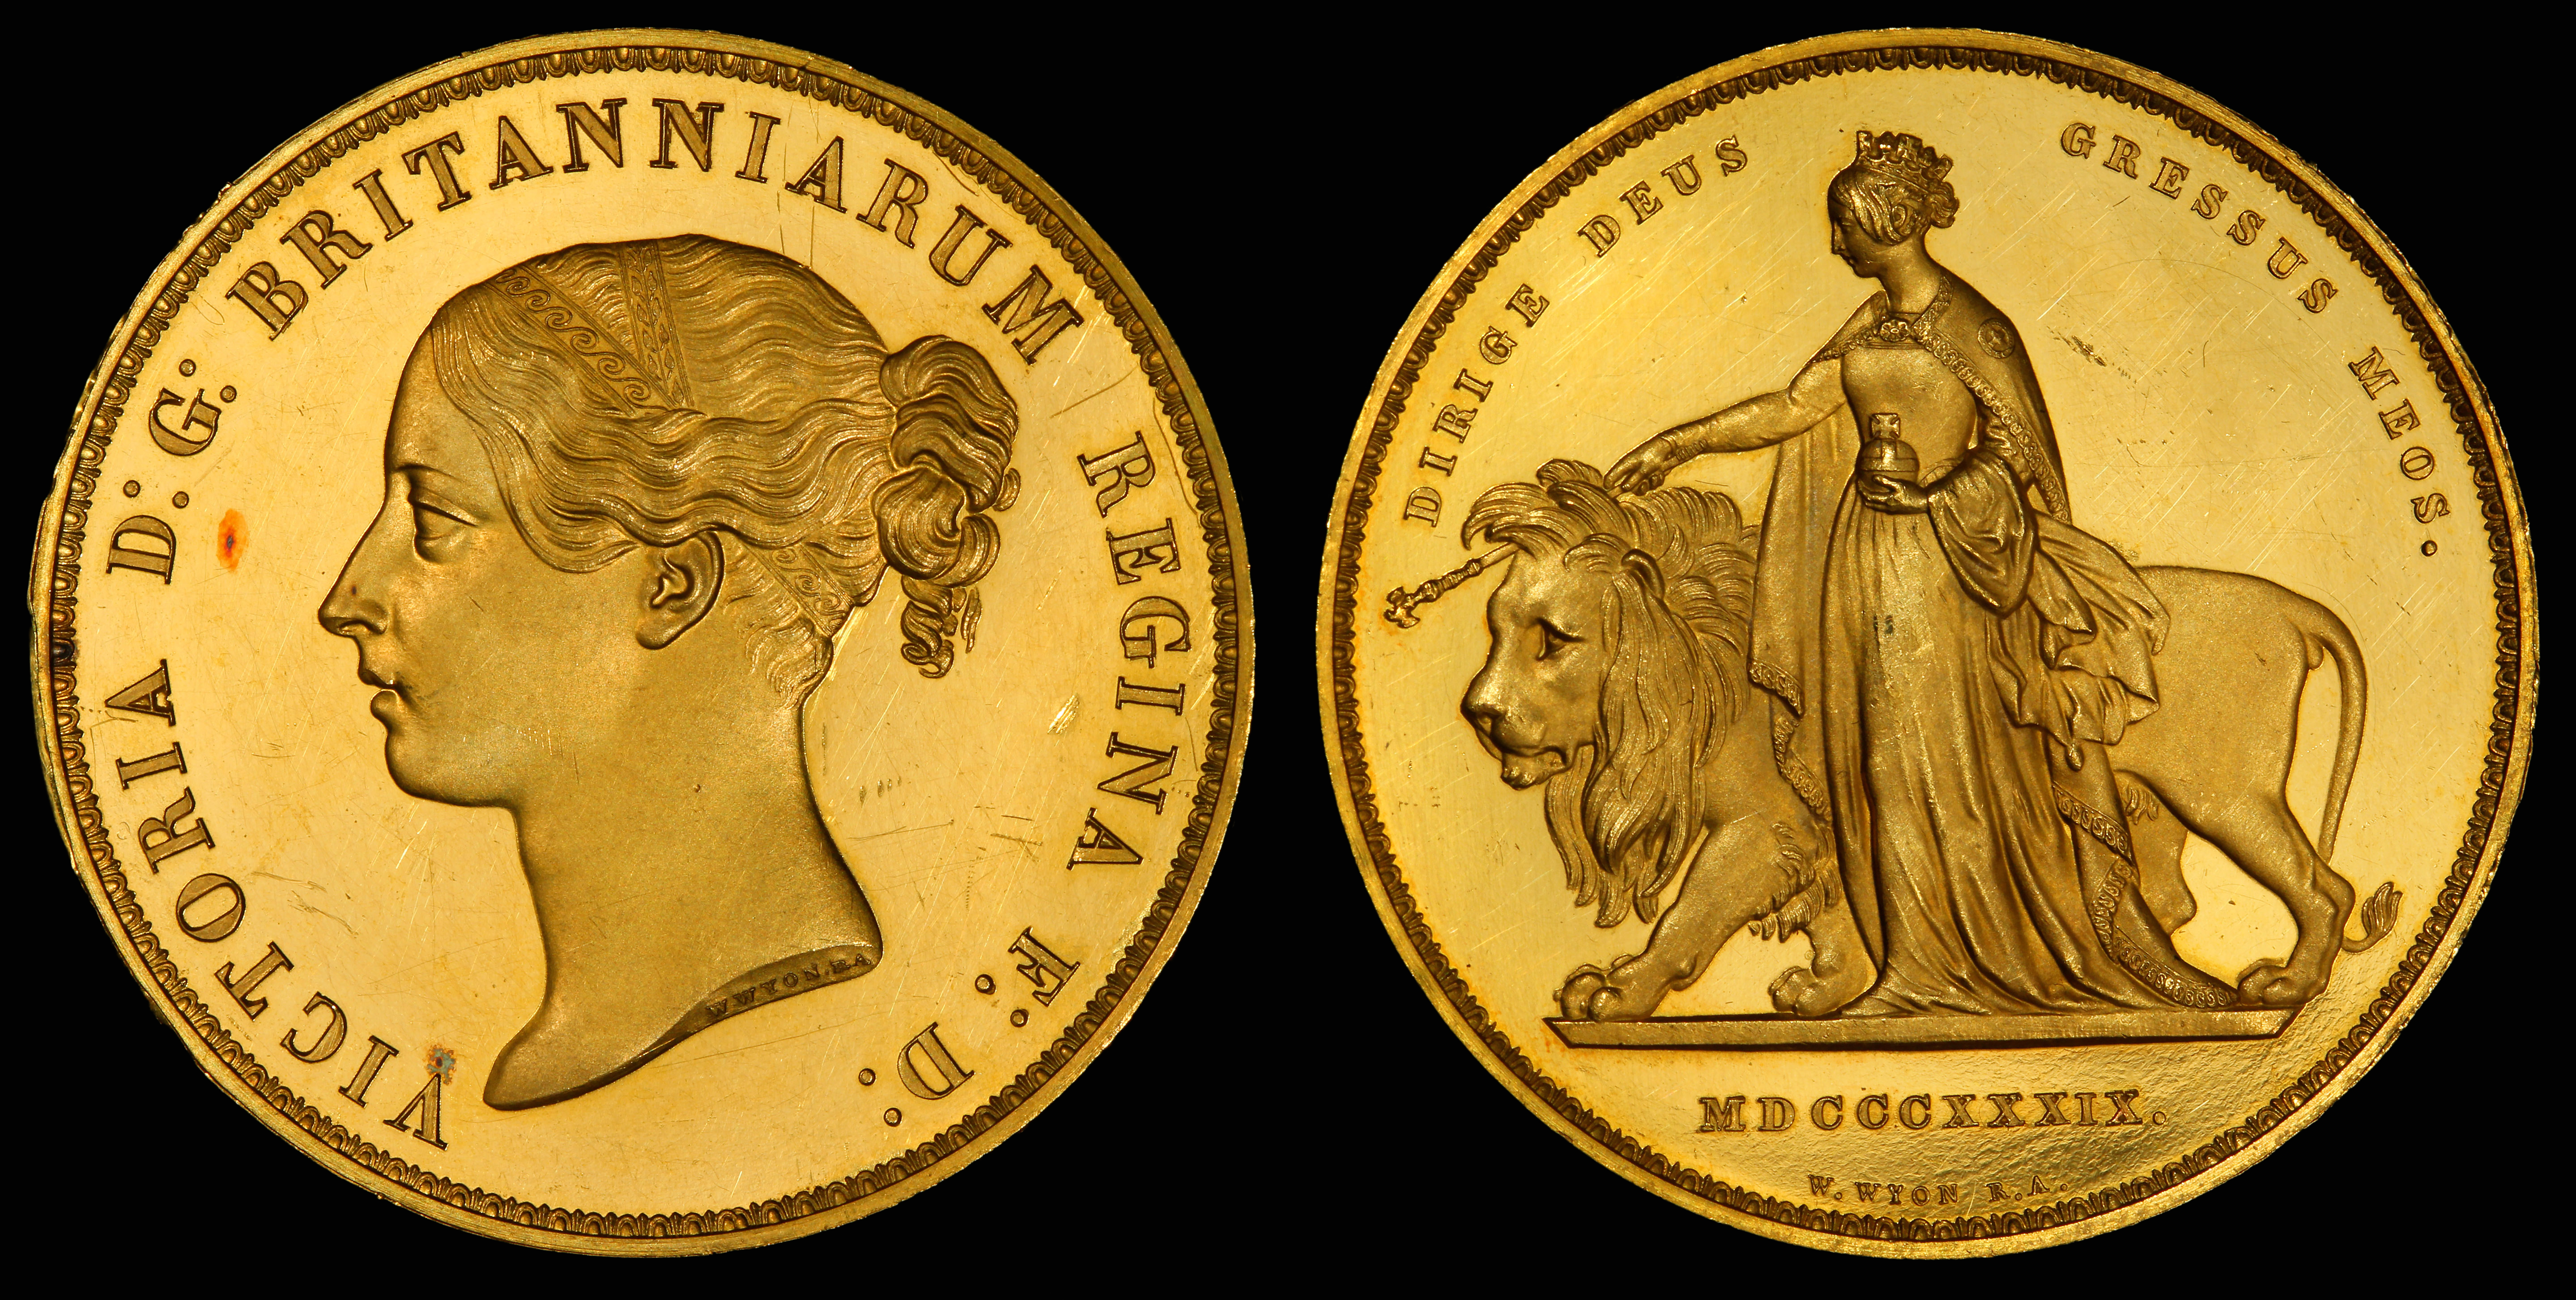 File:England (UK) 1839 5 Pounds (Una and the Lion).